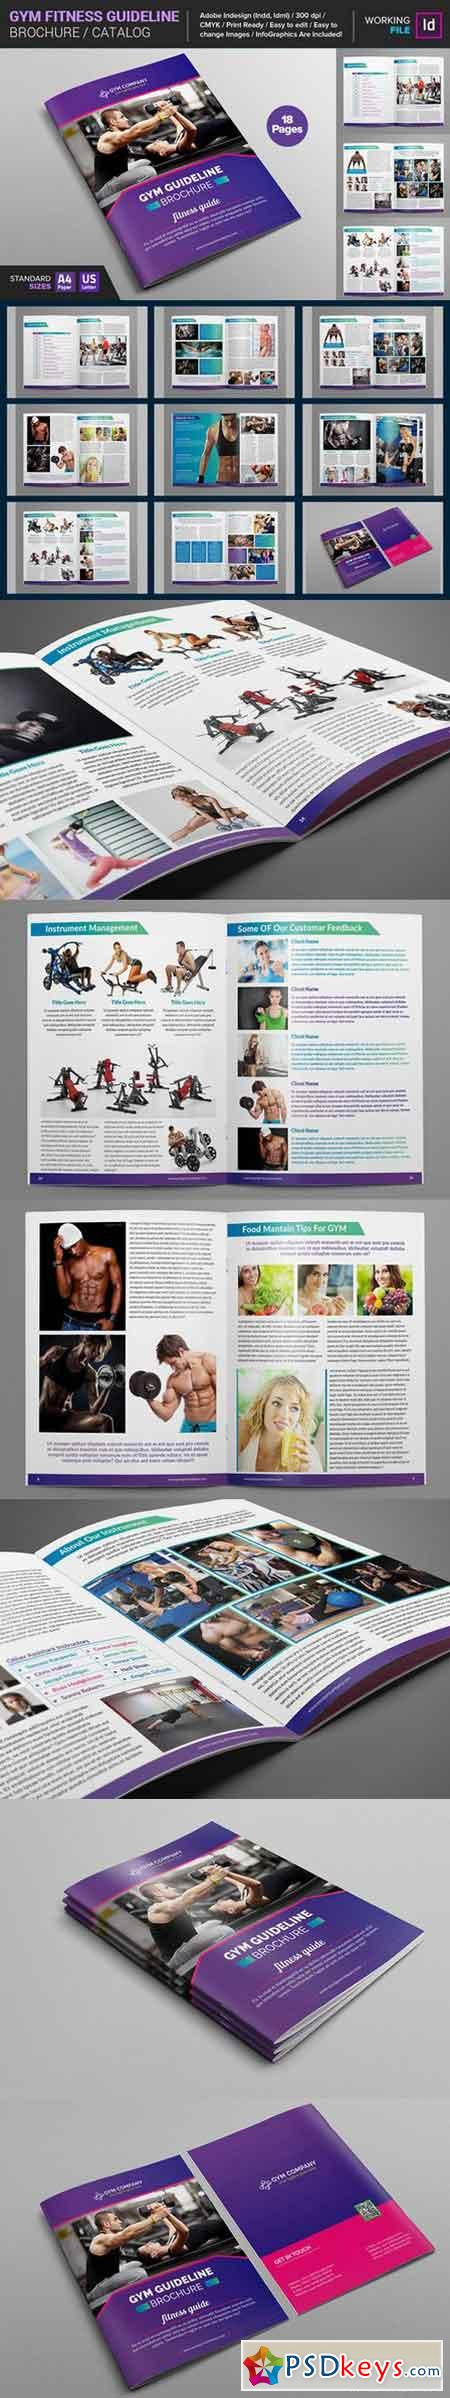 GYM Fitness Guideline Brochure 661851